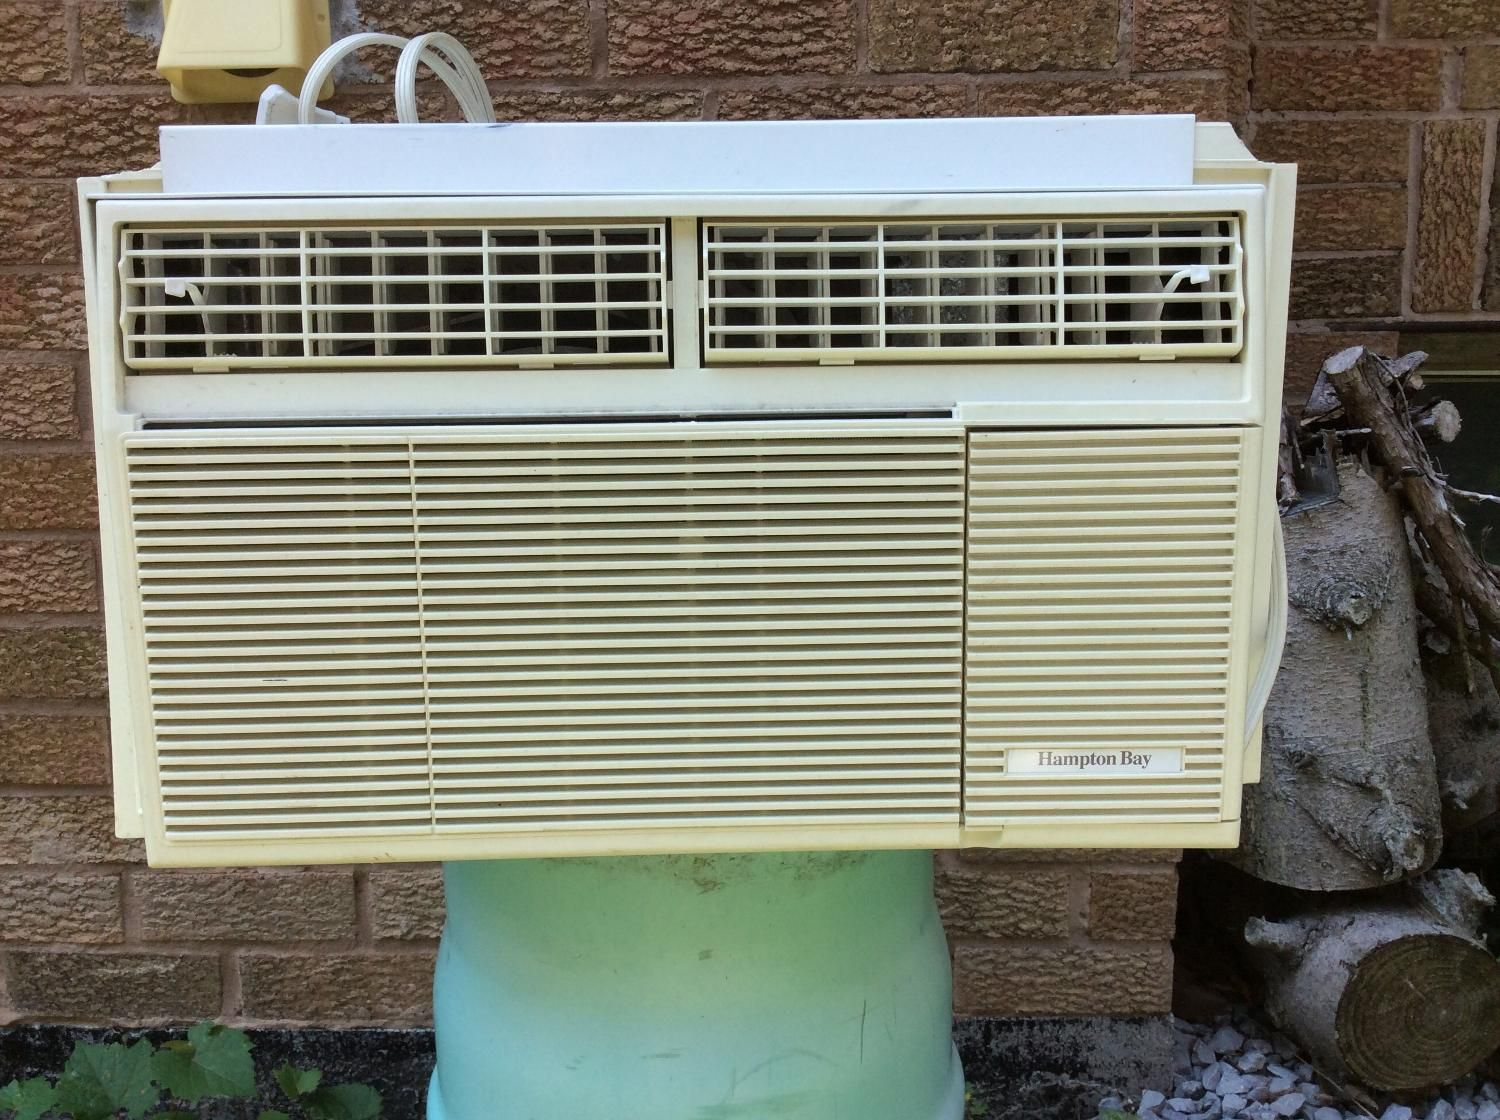 Hampton Bay Air Conditioner Not Cooling Hampton Bay Home Improvement Storage Devices